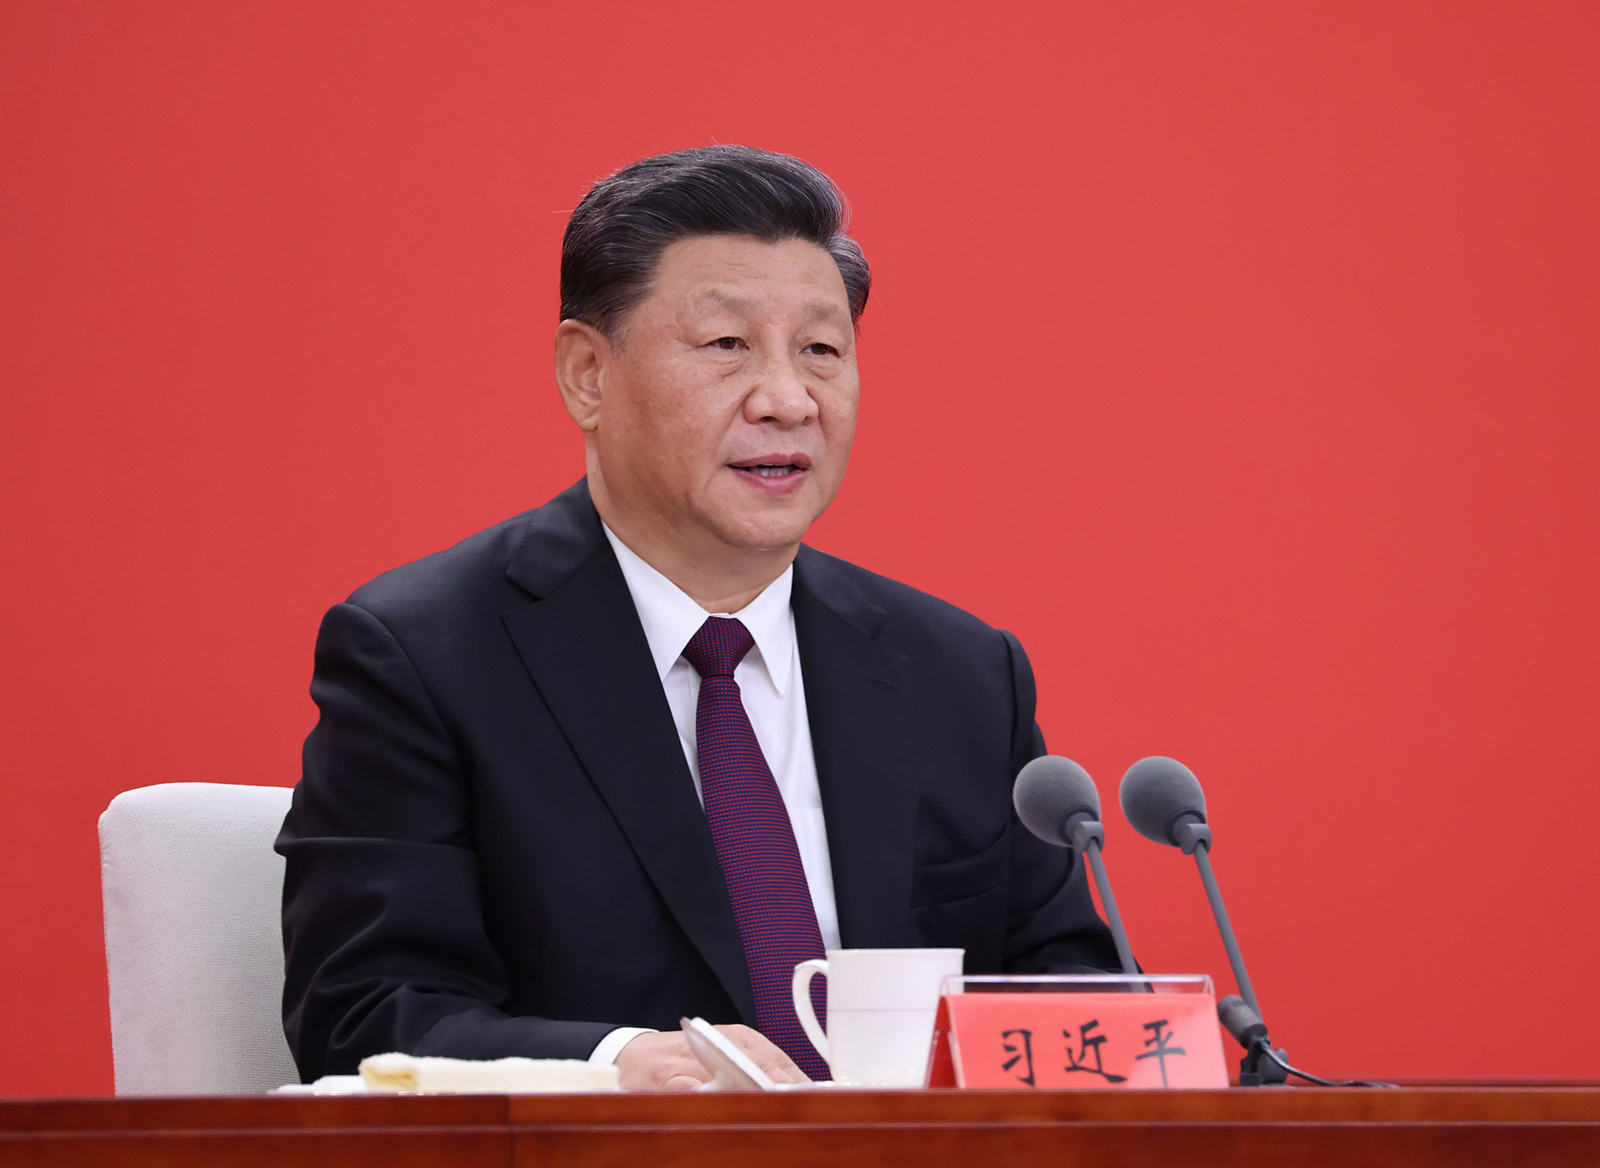 Chinese President Xi Jinping delivers a speech in Shenzhen, Guangdong province, on October 14.